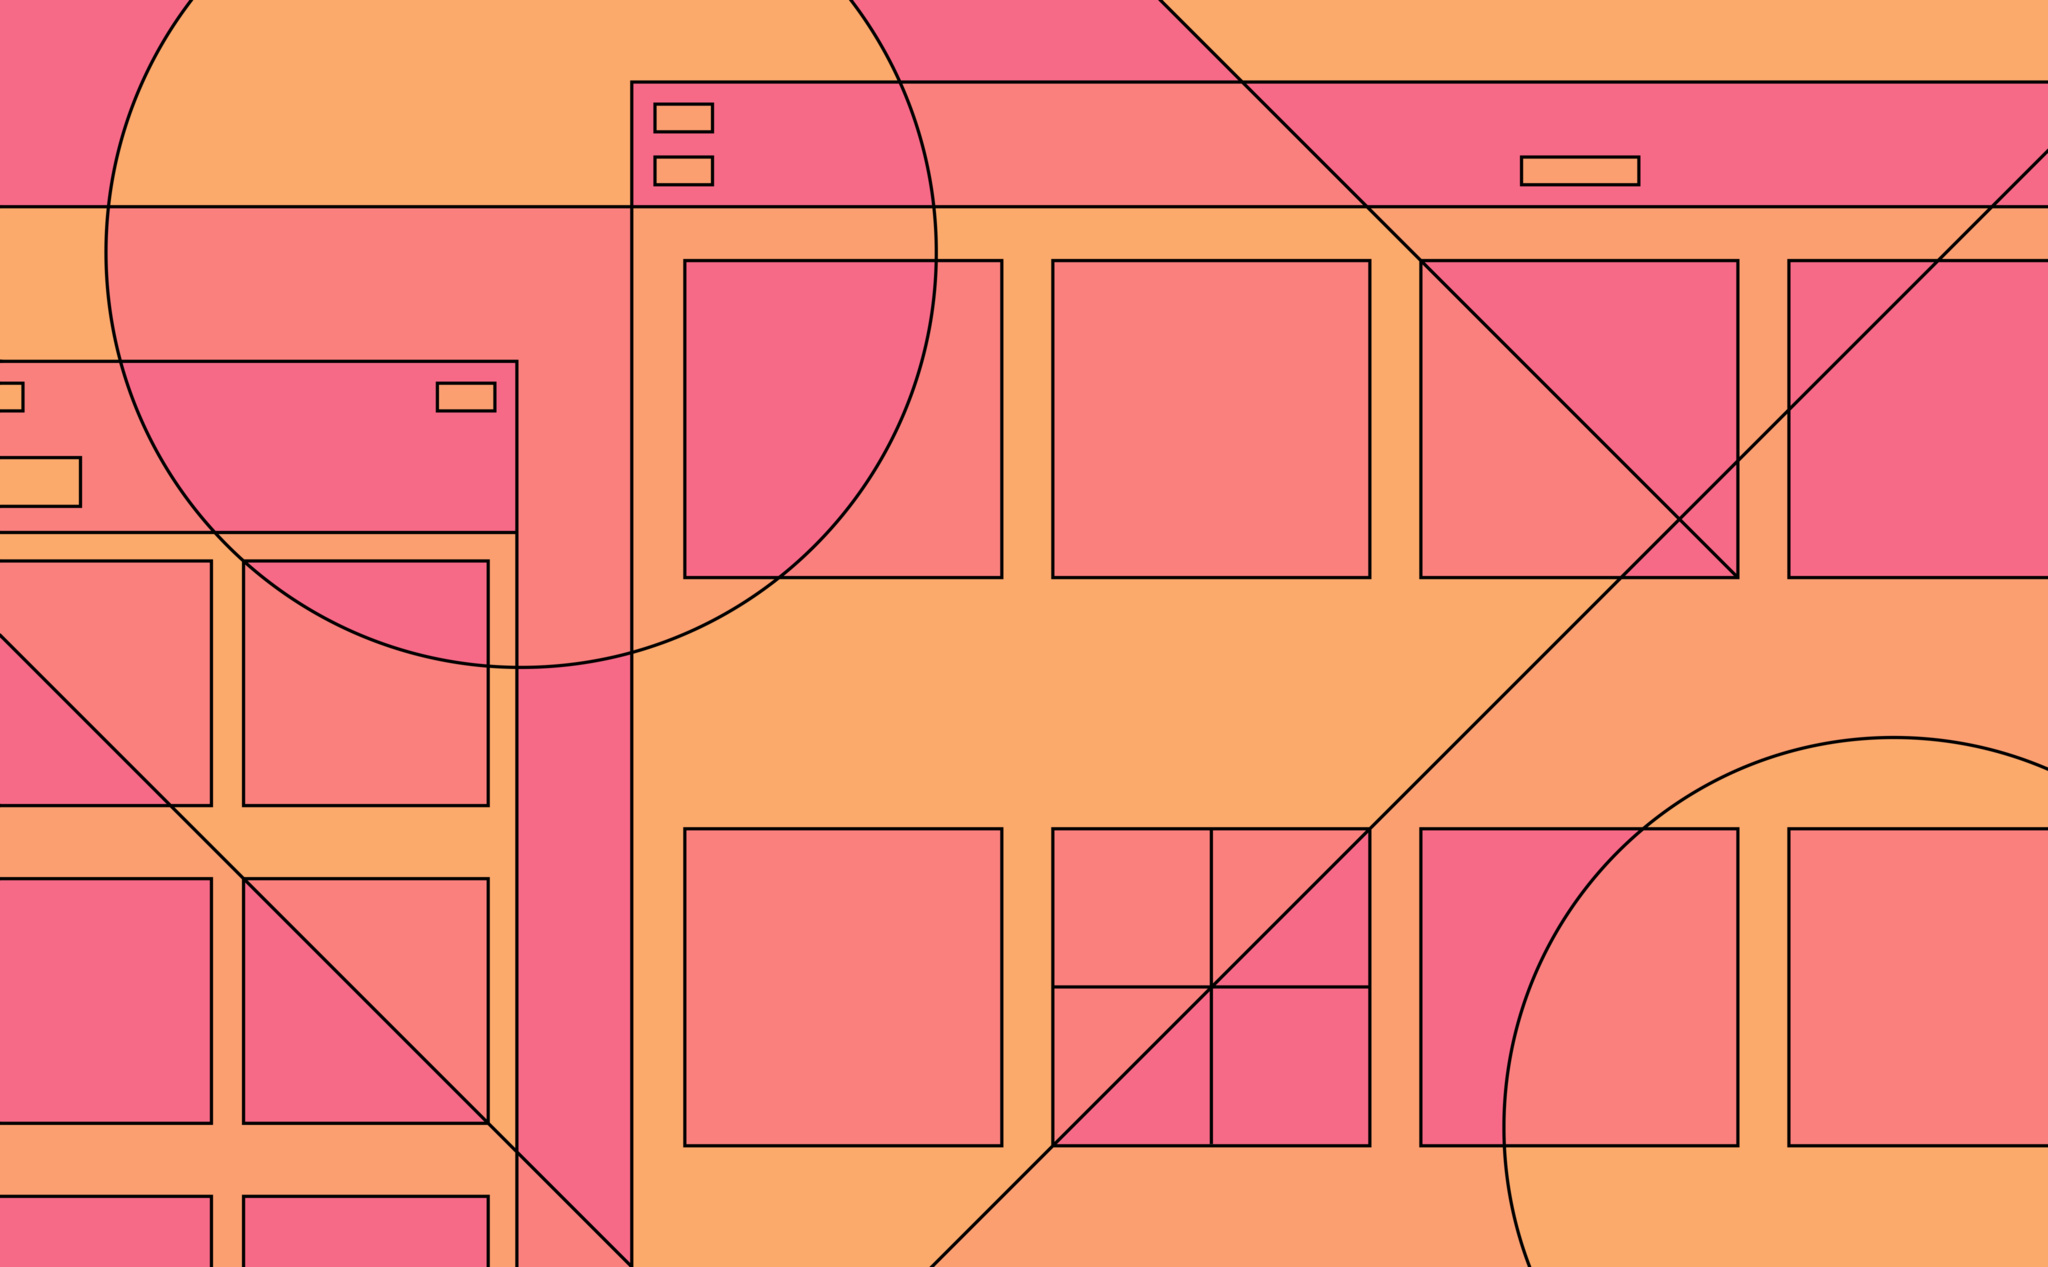 Orange and pink illustration of abstracted finder windows